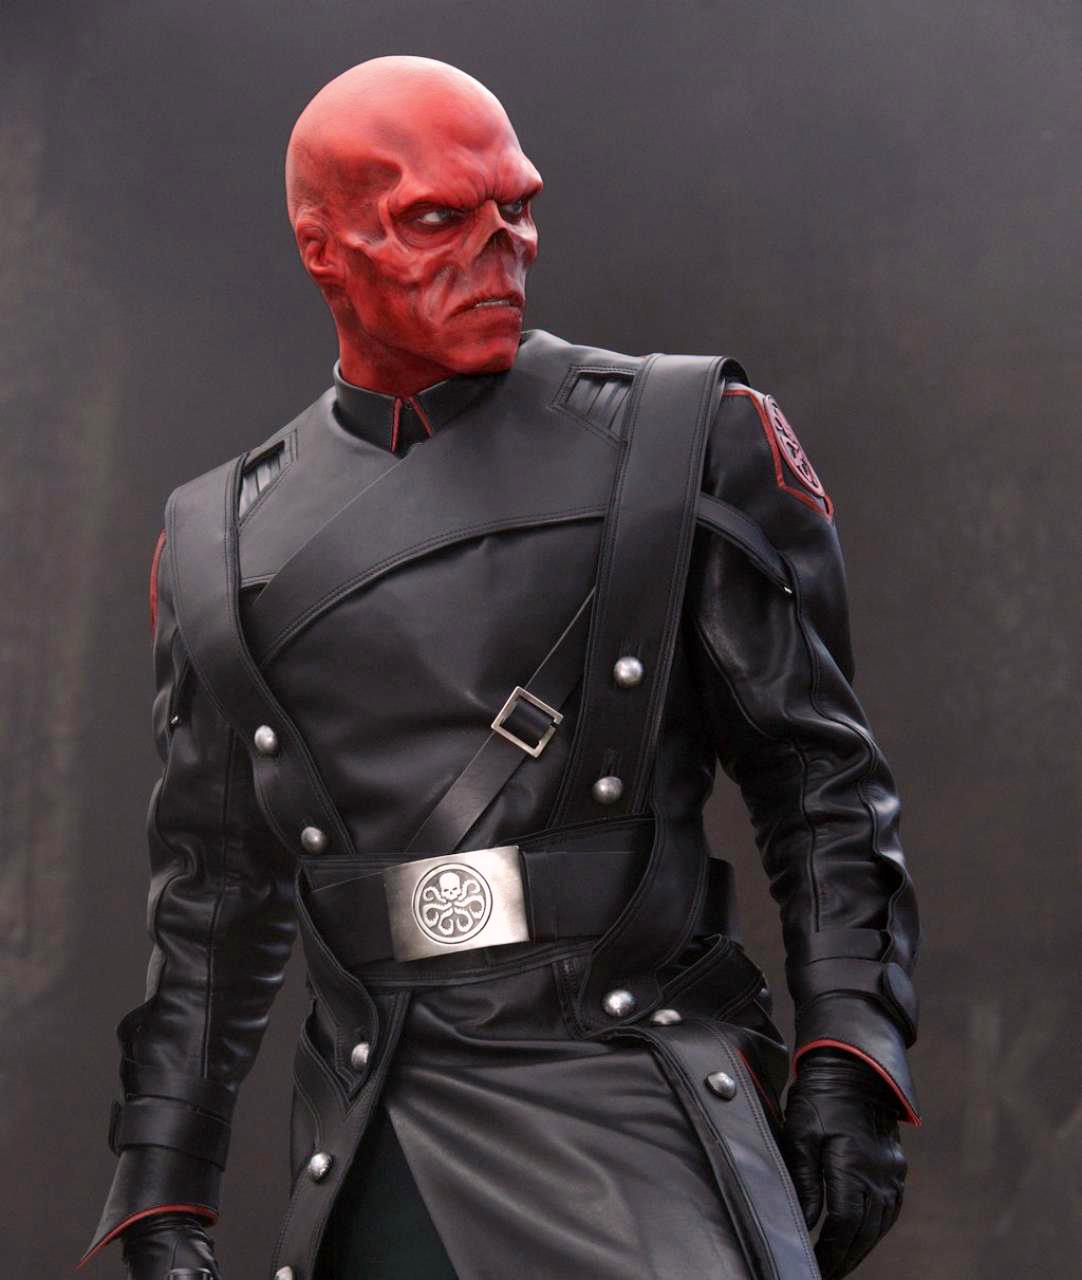 Red_Skull marvel-movies.wikia